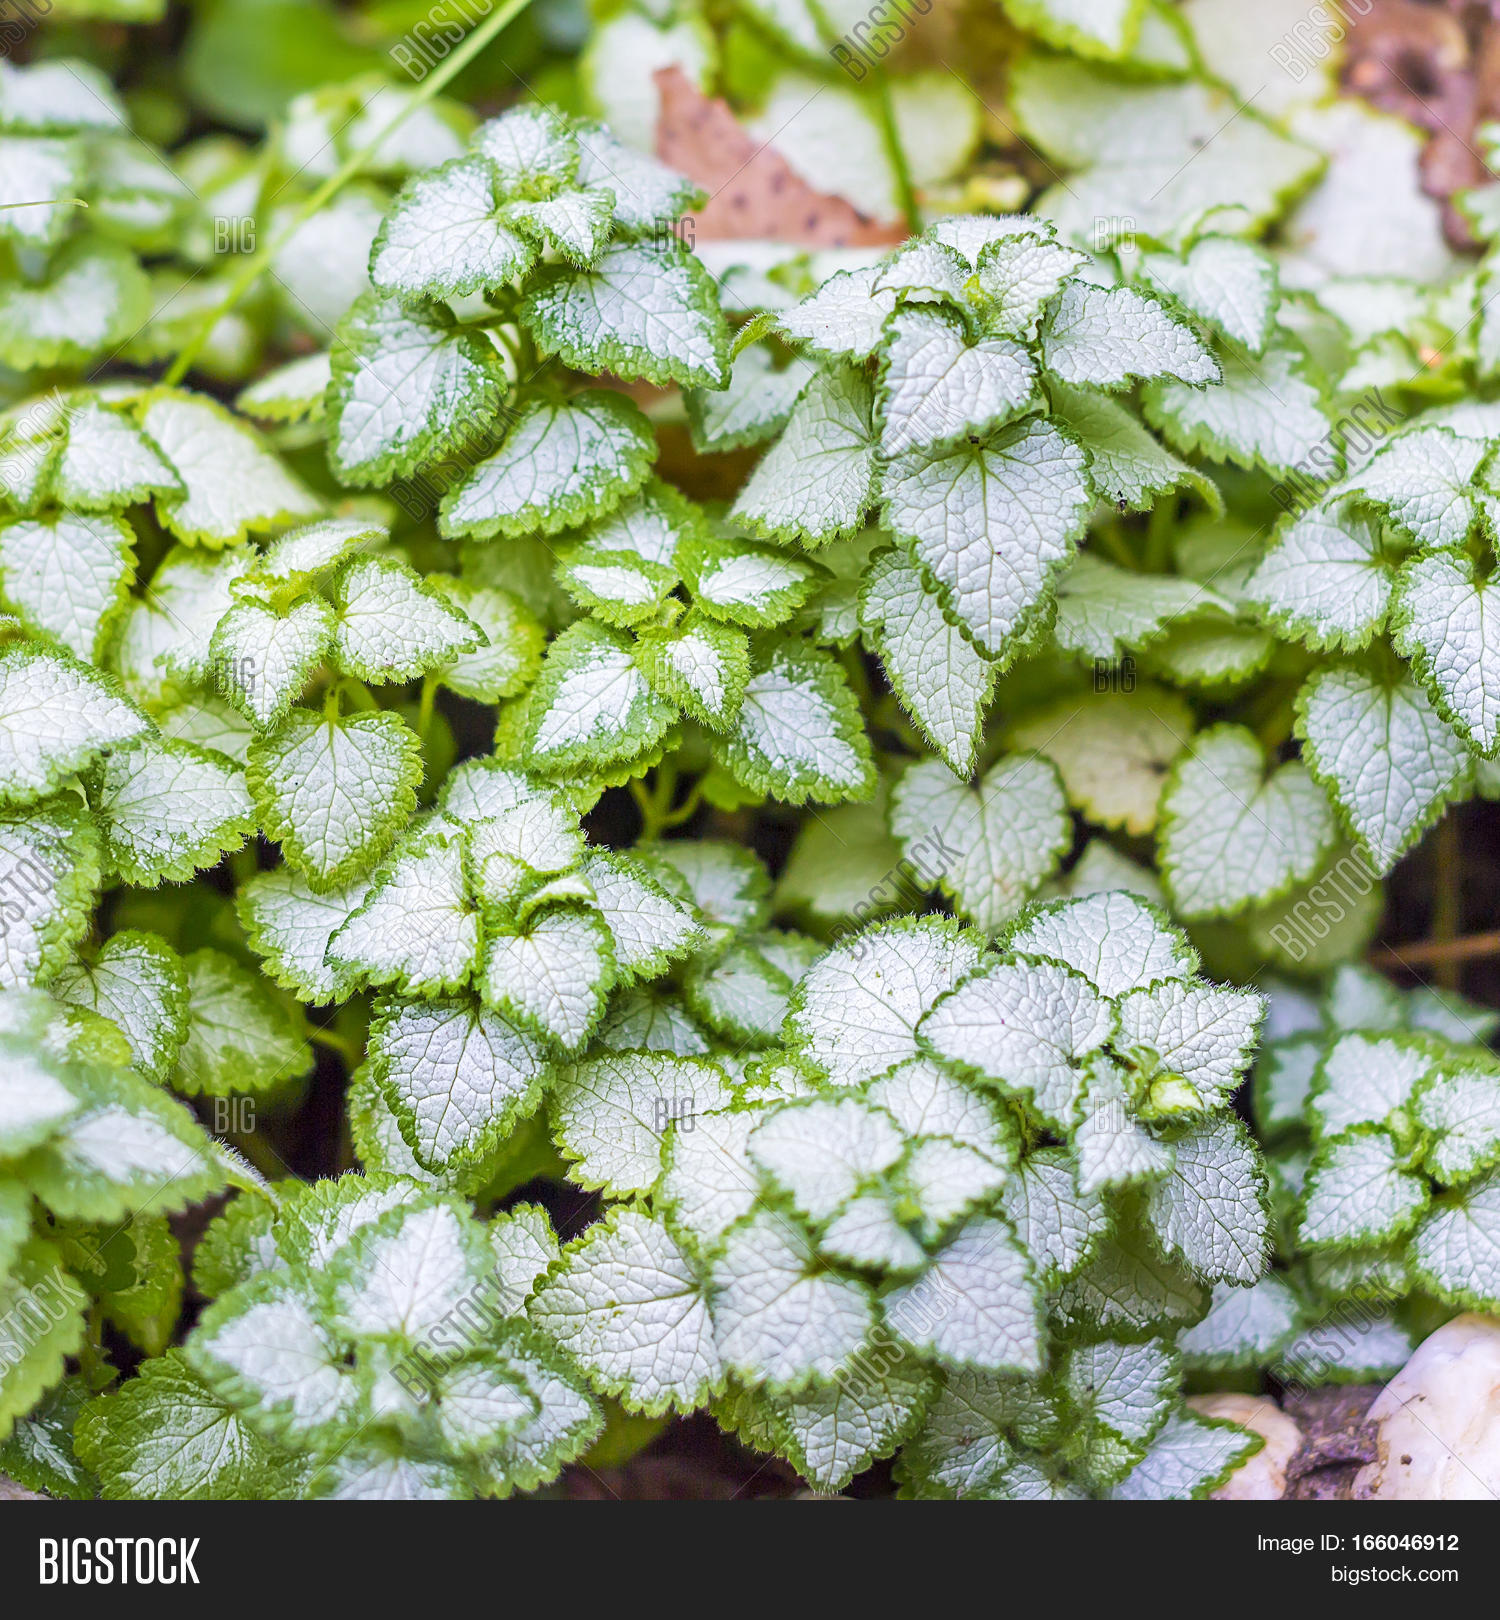 Spotted Dead Nettle Image Photo Free Trial Bigstock